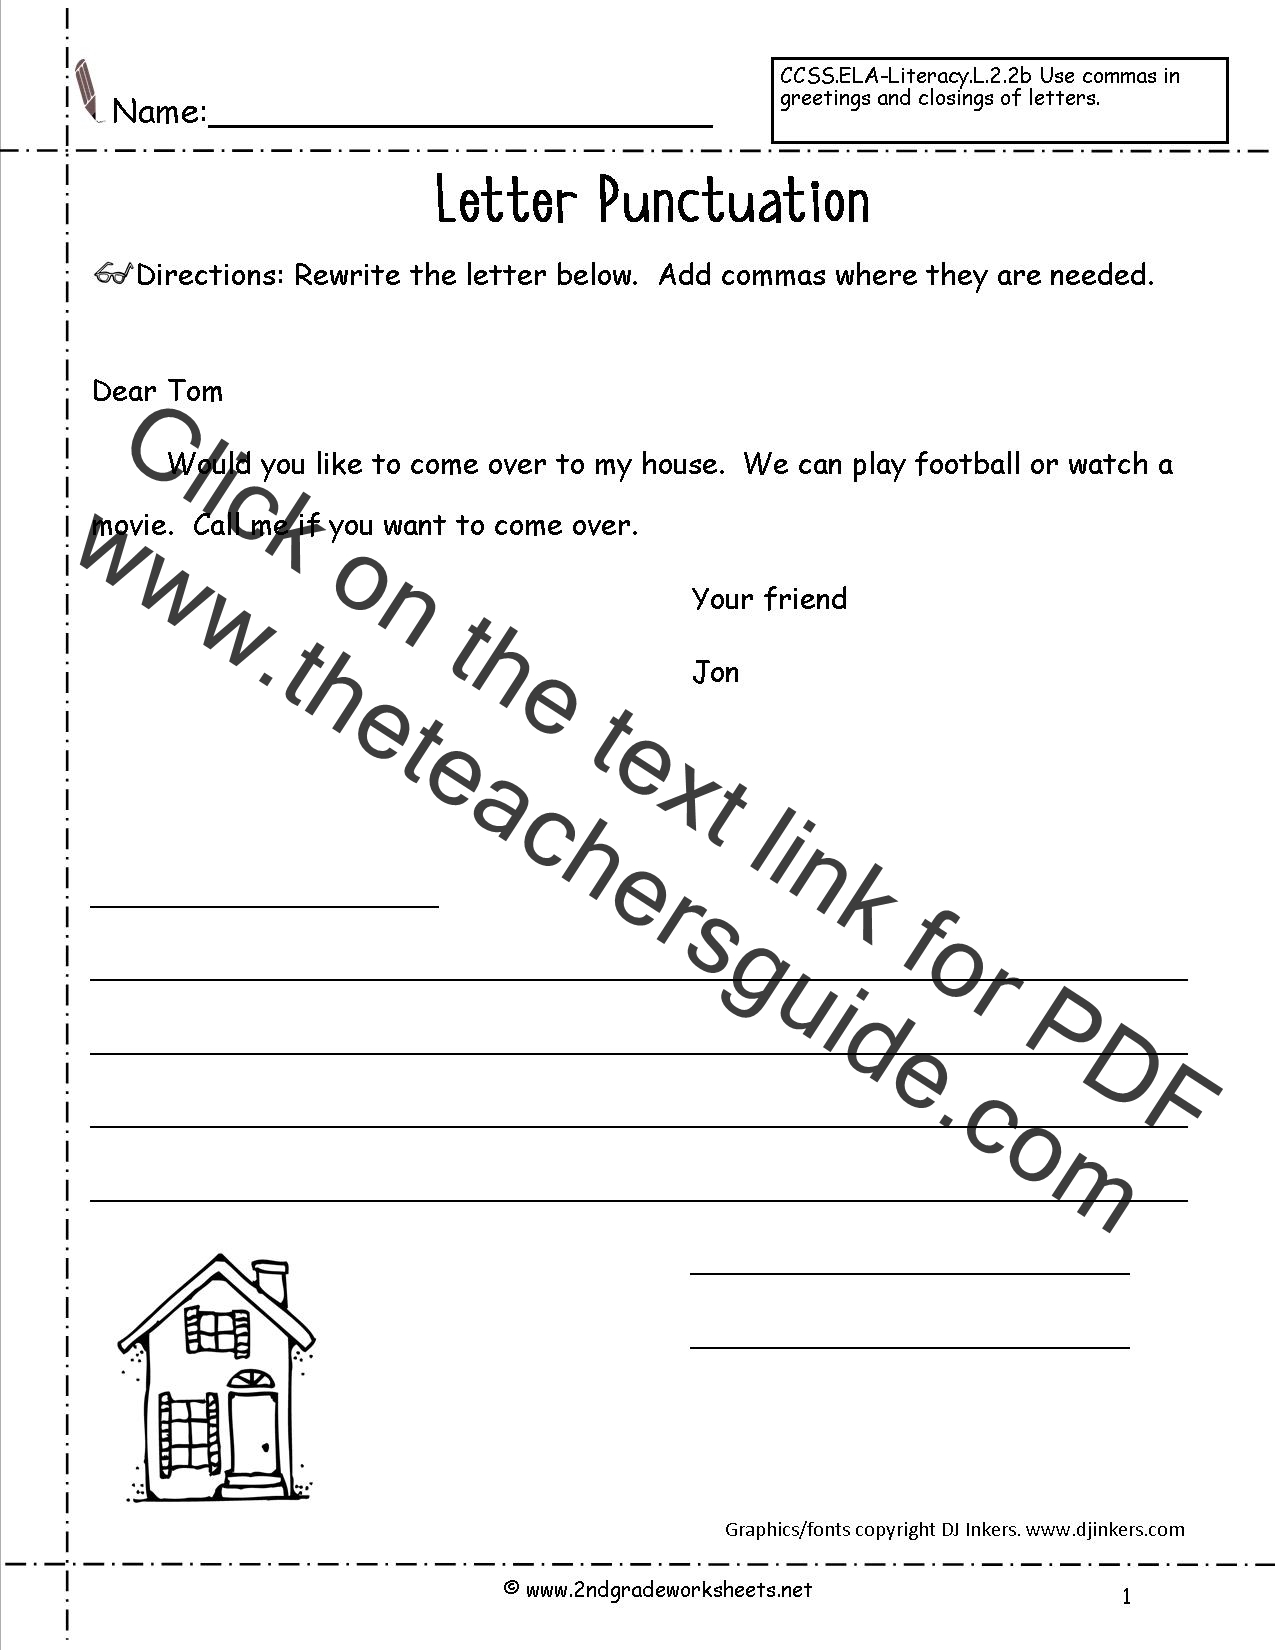 friendly letter punctuation